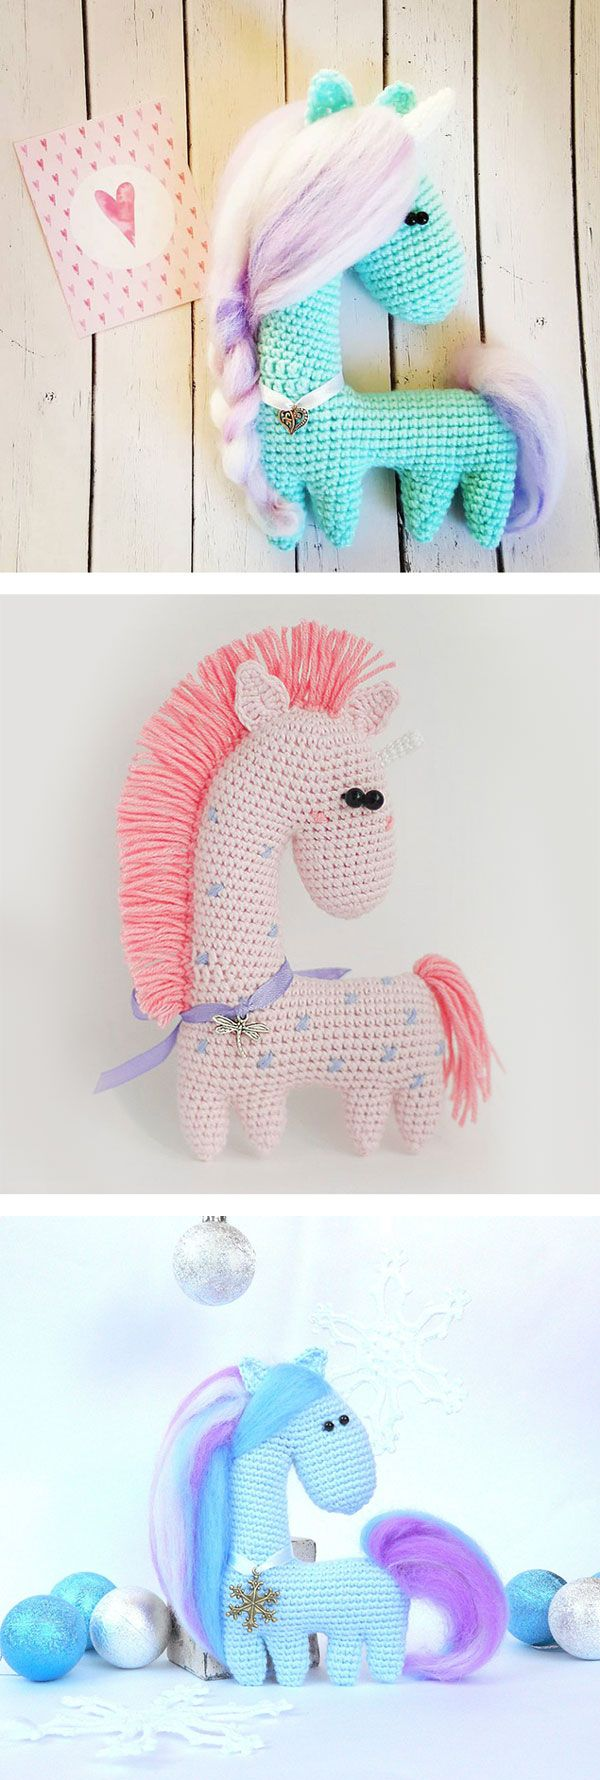 Free crochet horse pattern https://amigurumi.today/amigurumi-crochet ...